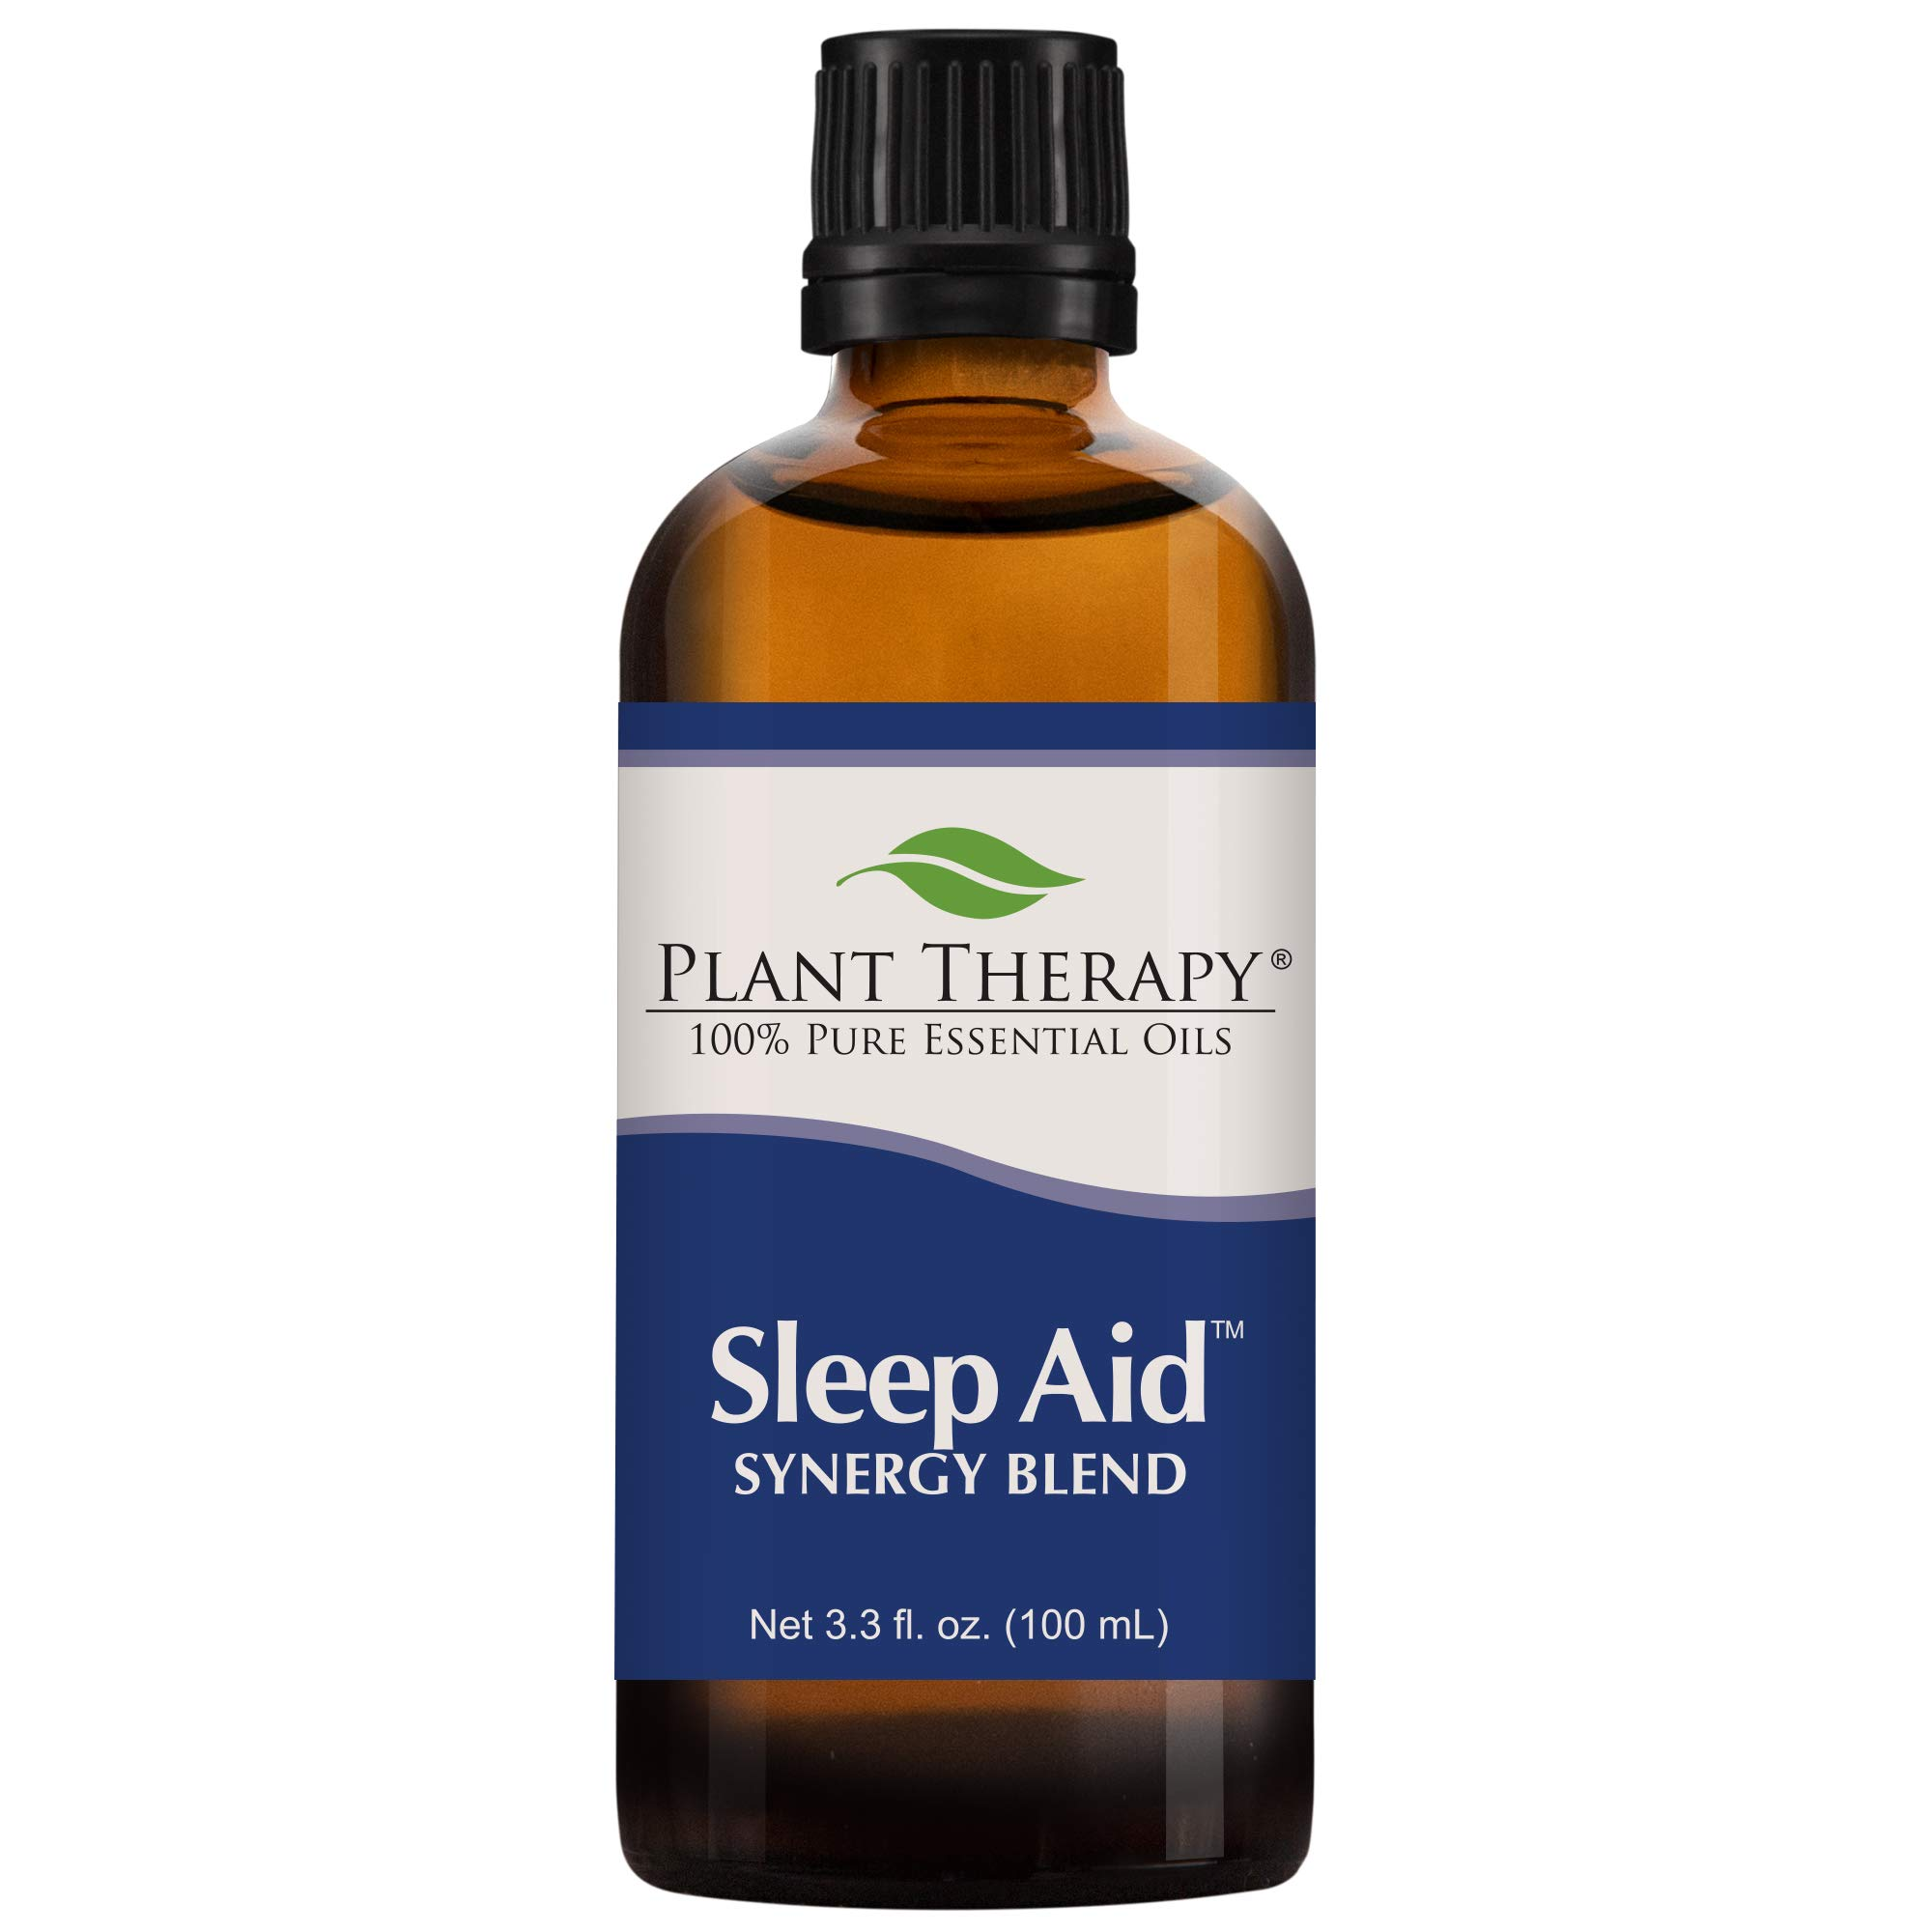 Plant Therapy Essential Oils Sleep Aid Synergy - Calming & Sleep Blend 100% Pure, Undiluted, Natural Aromatherapy, Therapeutic Grade 100 mL (3.3 oz) by Plant Therapy